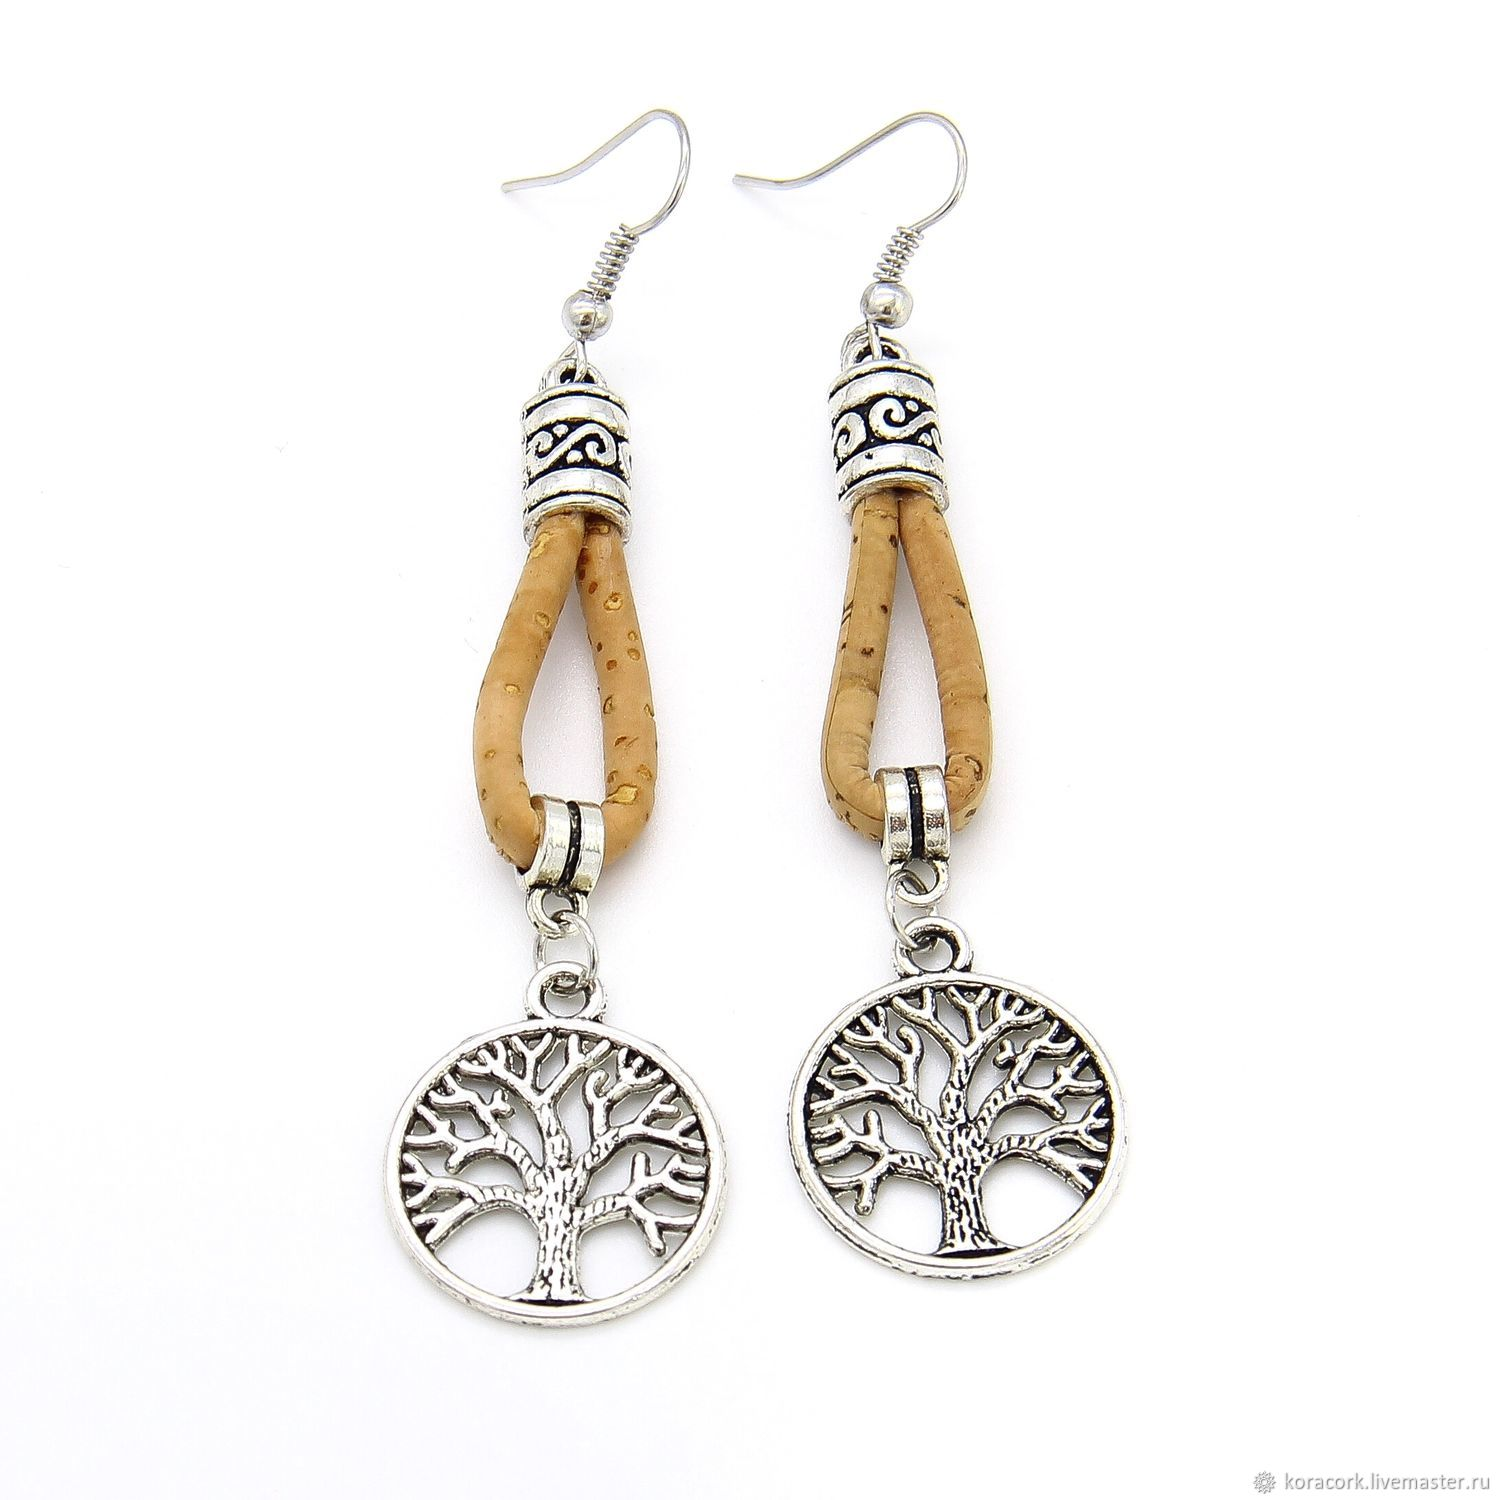 Tree Of Life Earrings From Portuguese Cork Handmade Br0006w Shop Online On Livemaster With Shipping Jb20wcom Moscow